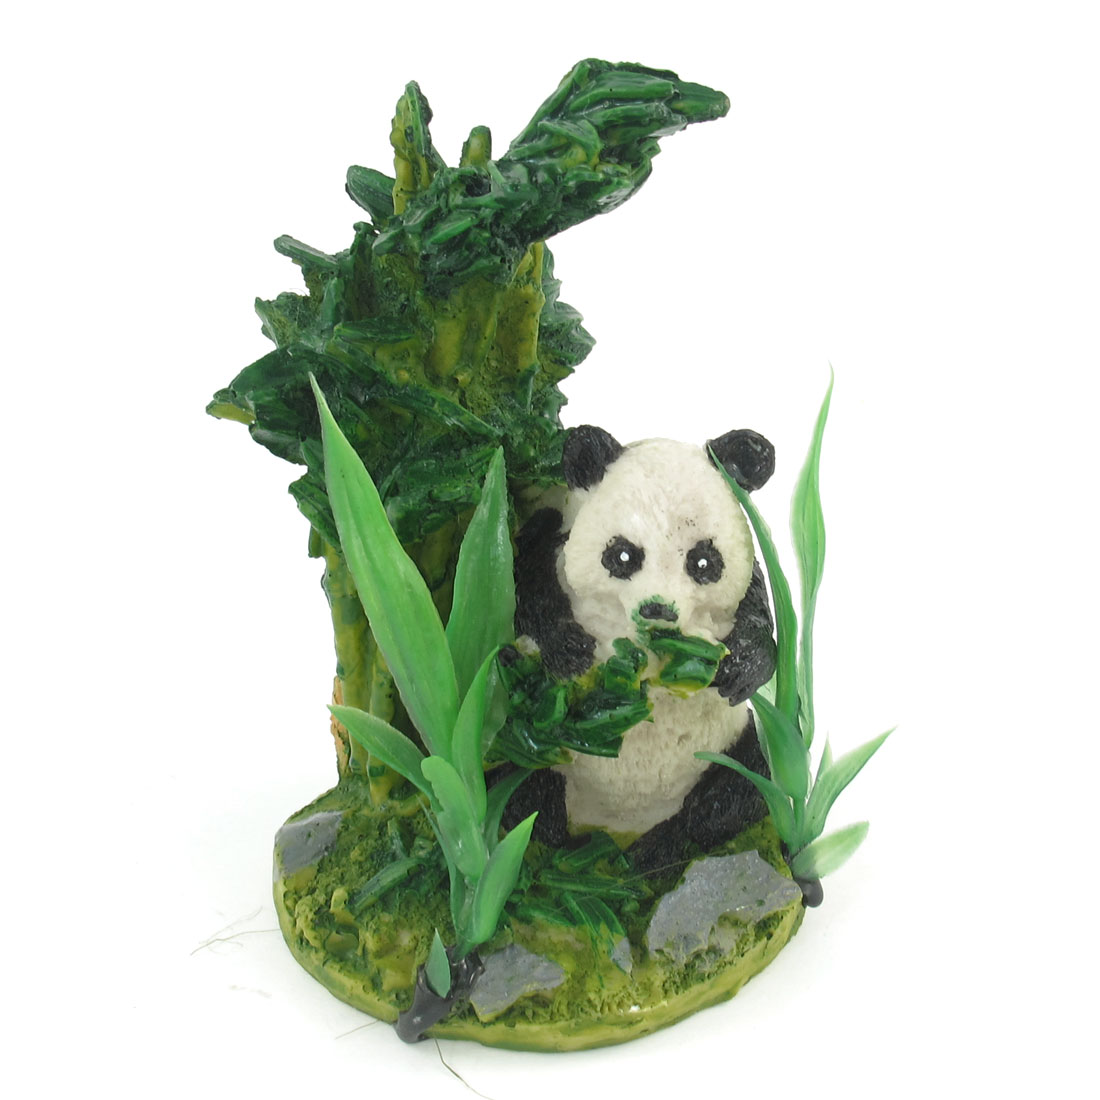 "Resin Panda Bamboo Water Grass Design Aquarium Fishtank Ornament 4.7"" Height"